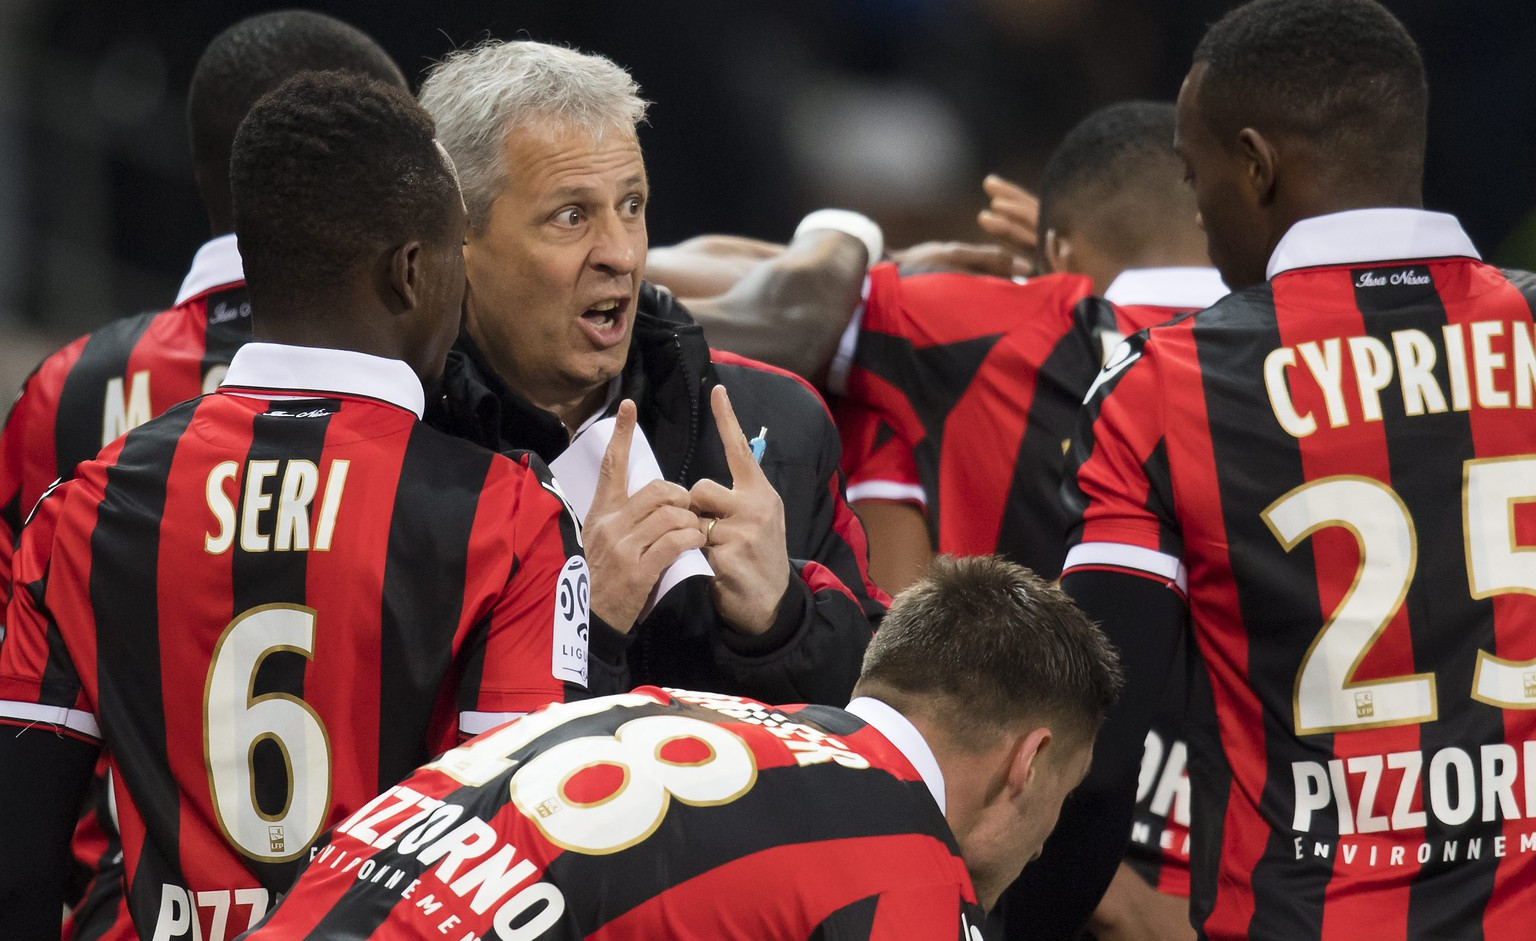 epa05660115 OGC Nice's Swiss head coach Lucien Favre talks to his players during the French Ligue 1 soccer match, between OGC Nice and  Toulouse FC, at the Allianz Riviera stadium, in Nice, France, Sunday, December 4, 2016.  EPA/JEAN-CHRISTOPHE BOTT